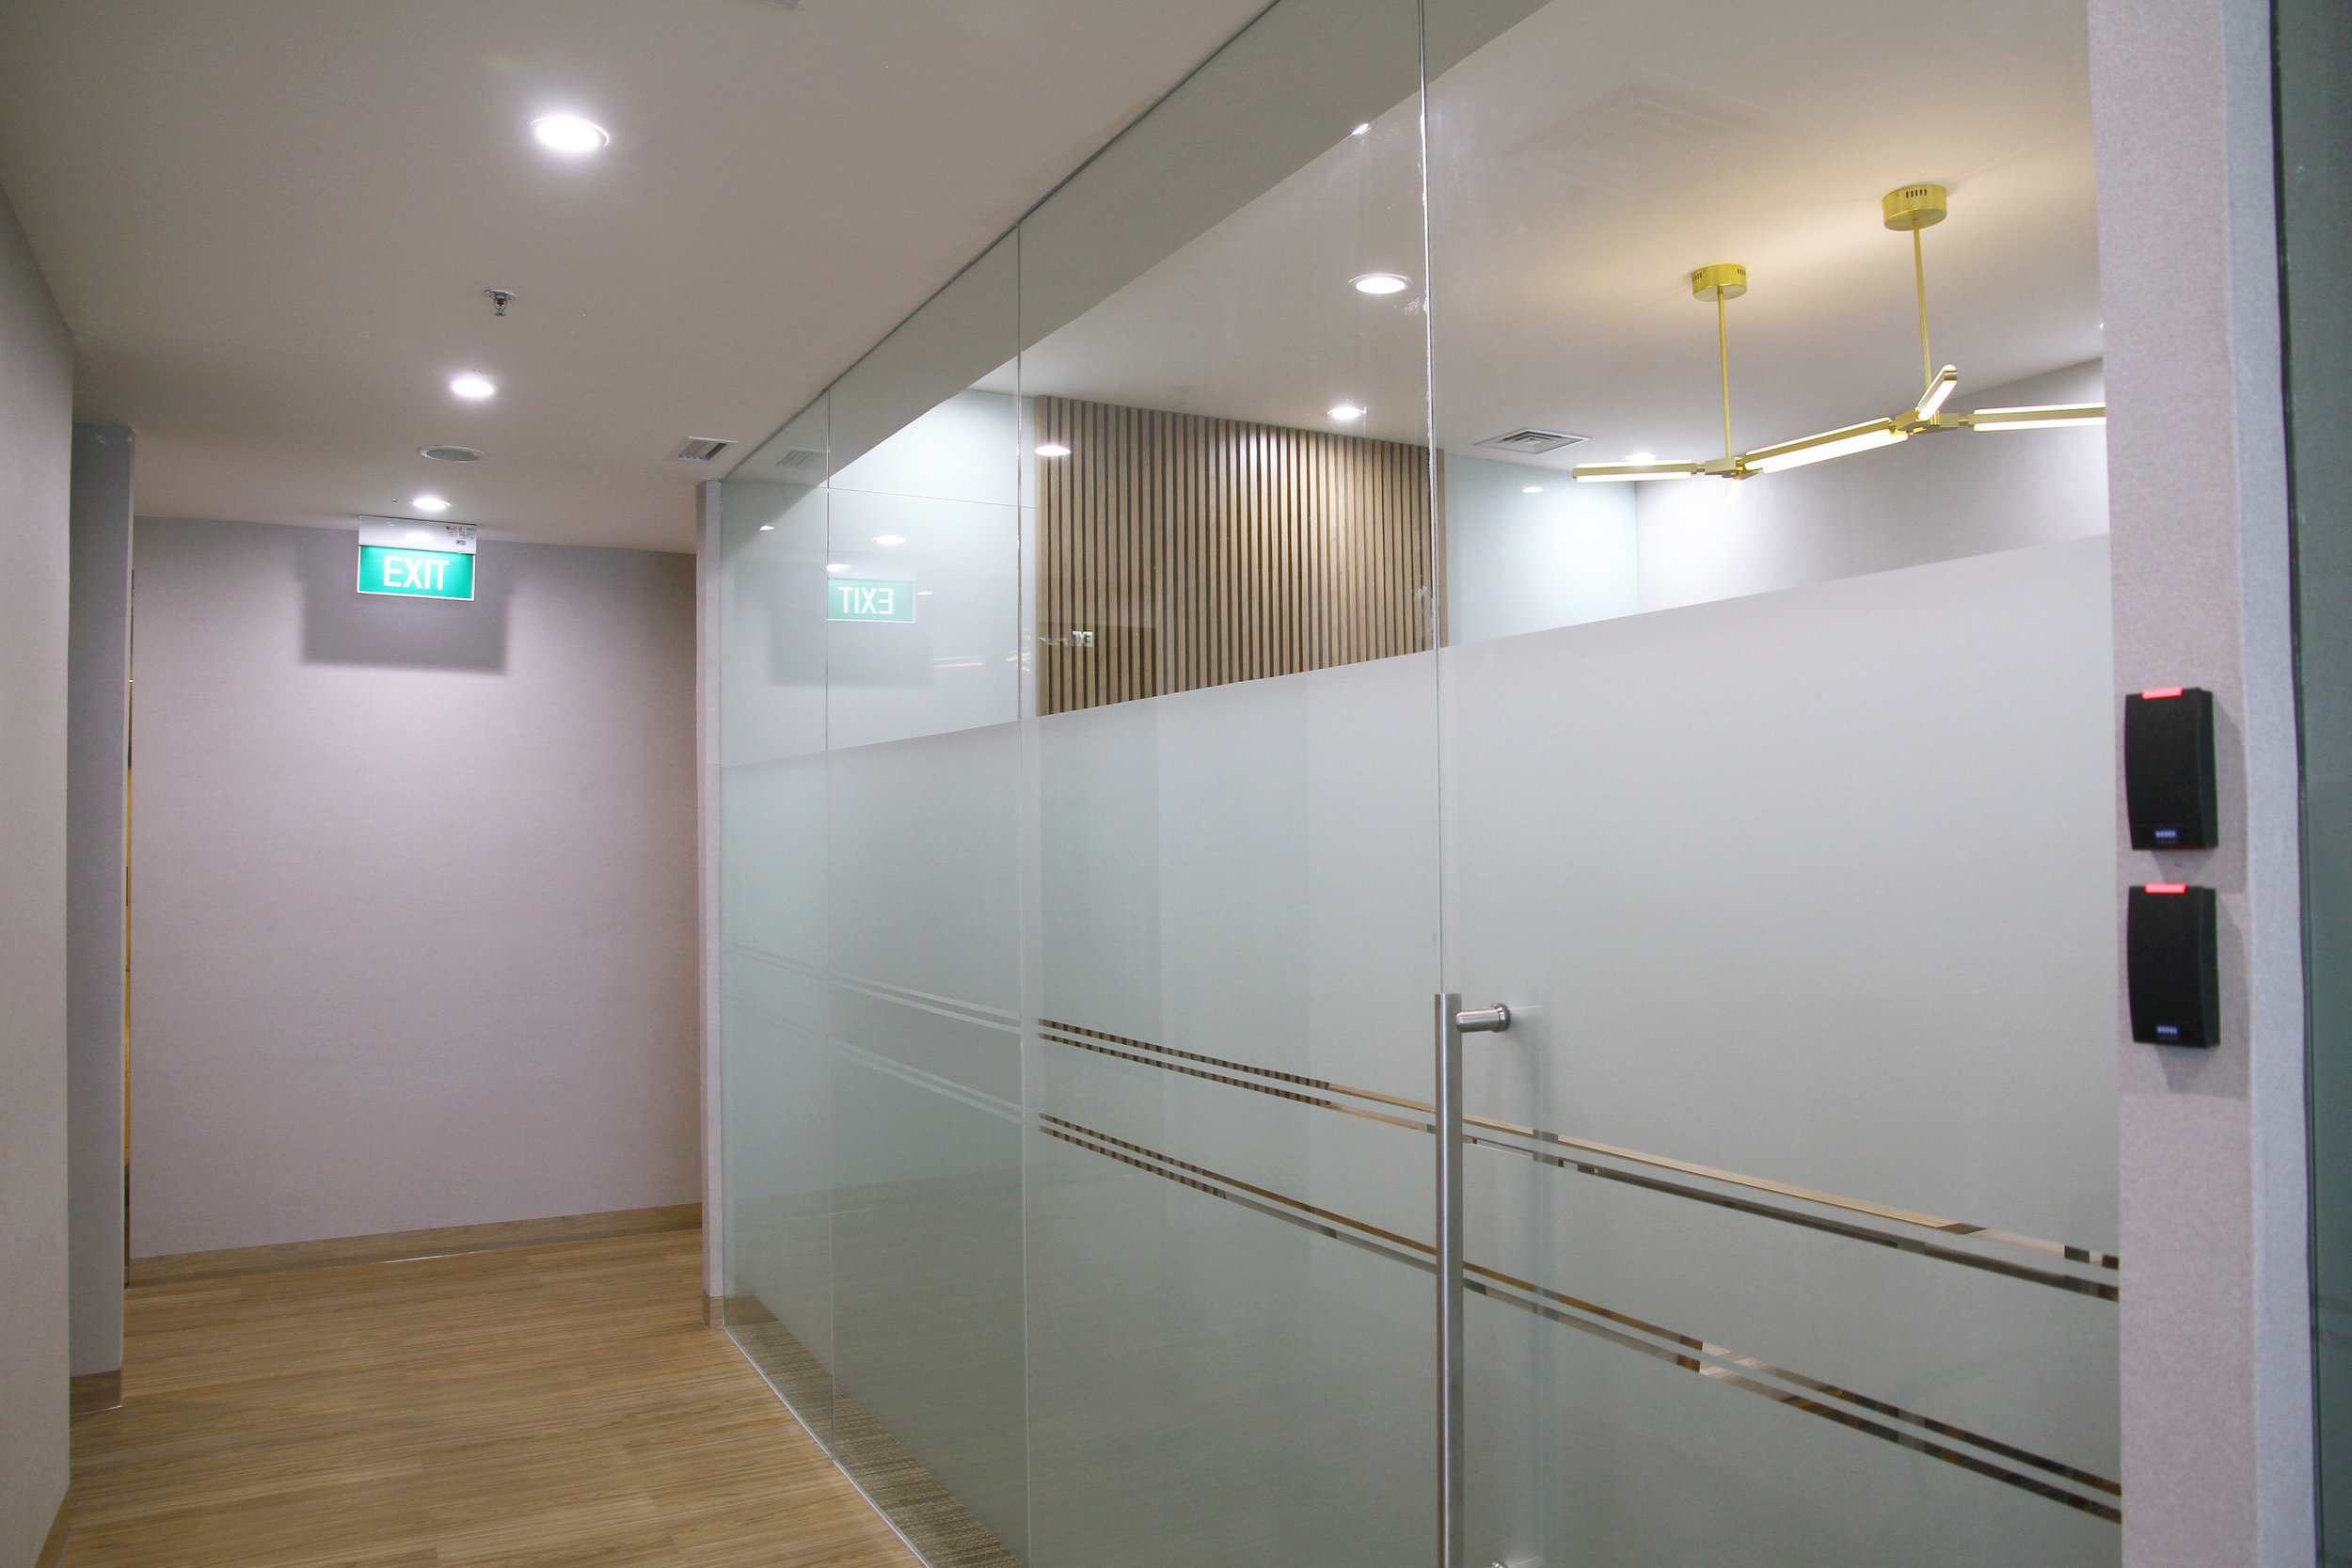 ALL OF OUR PRIVATE OFFICES ARE SECURED WITH STATE OF THE ART KEYCARD ACCESS